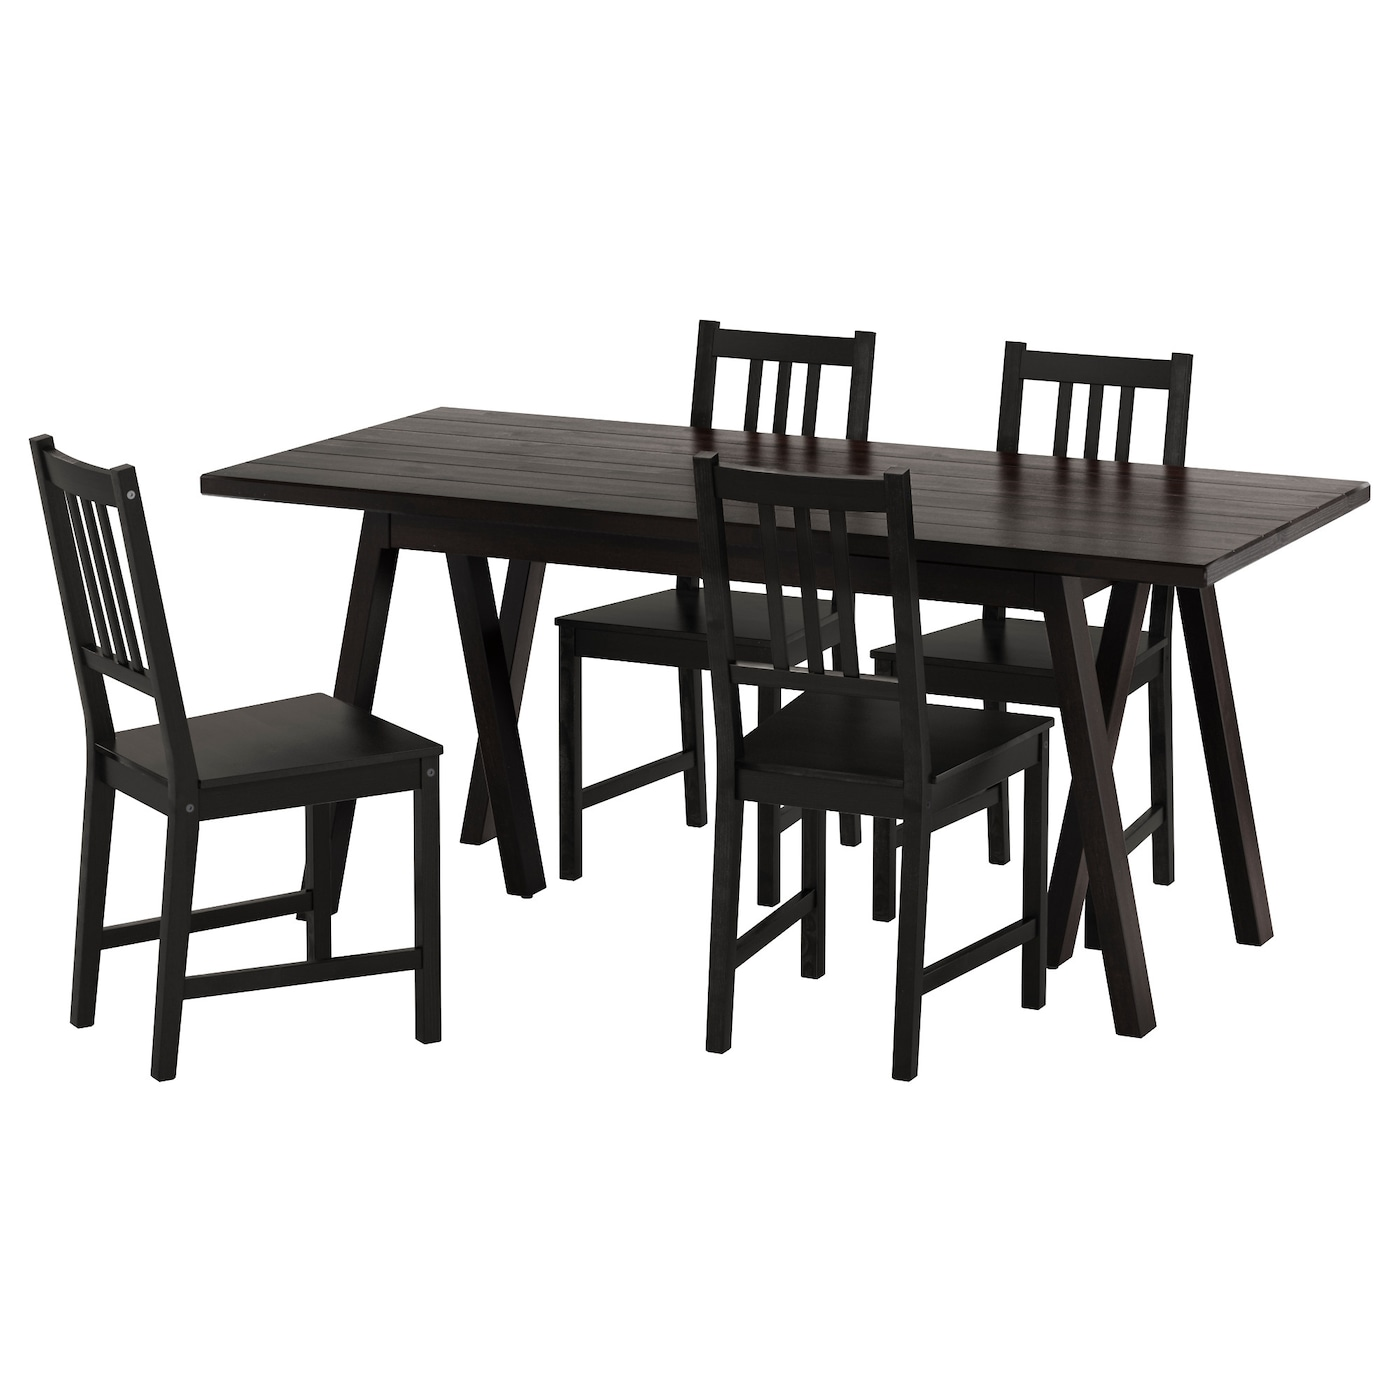 IKEA STEFAN/RYGGESTAD/GREBBESTAD Table And 4 Chairs Part 45